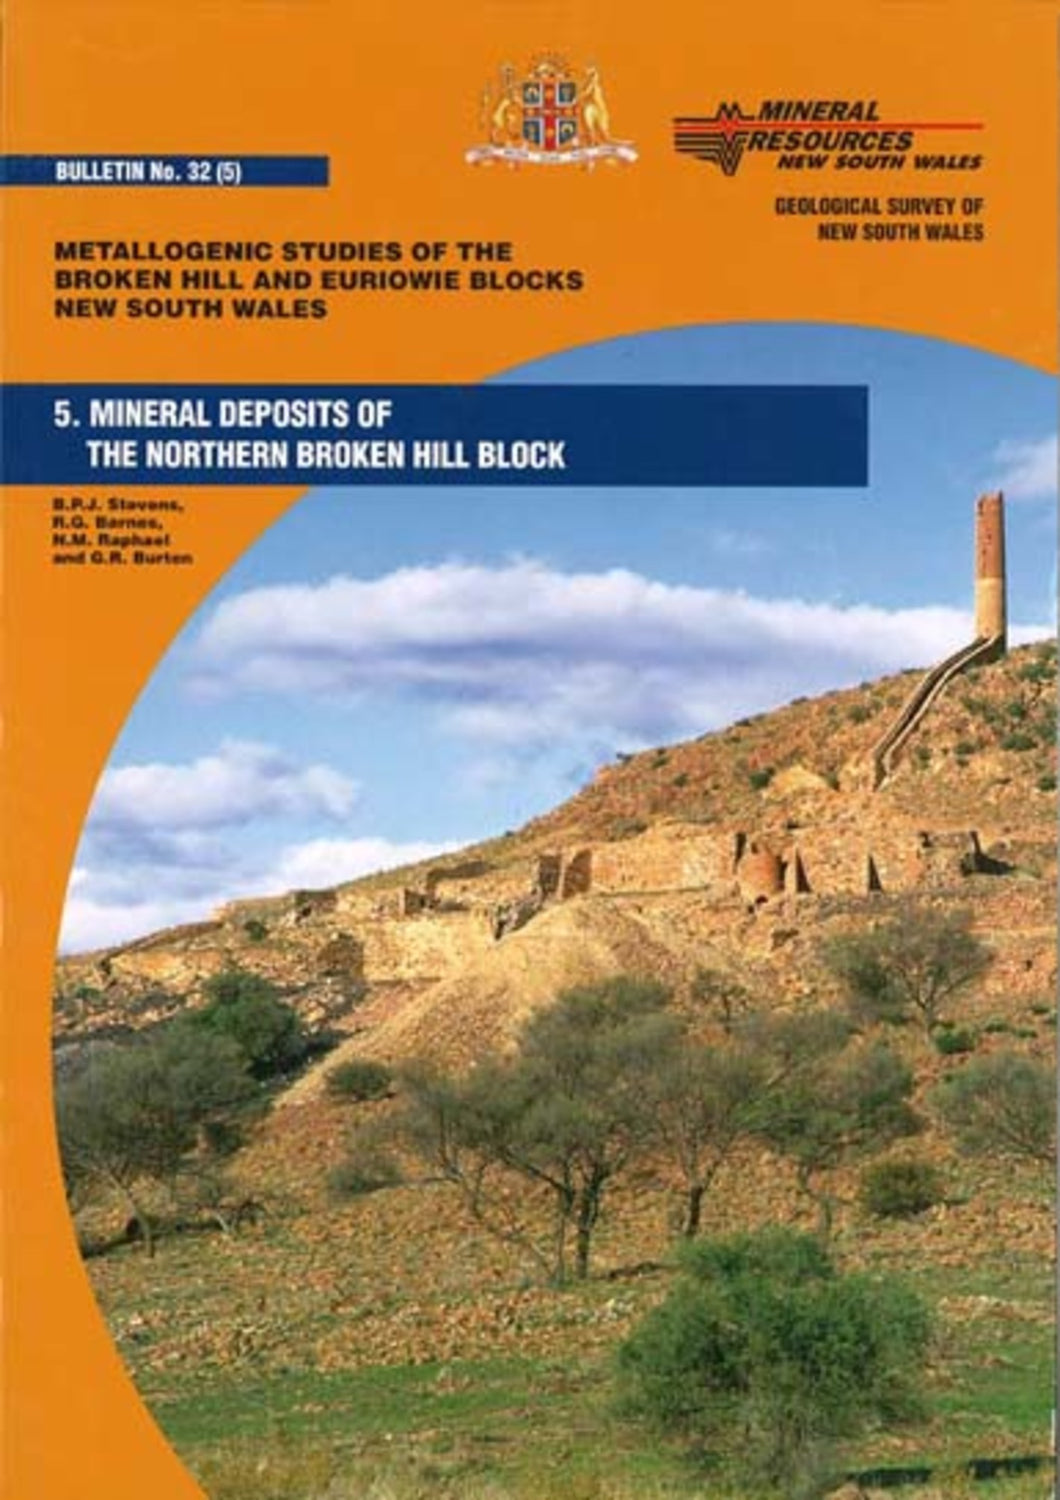 Image of Bulletin Number 32 part 5   2003: Metallogenic studies of the Broken Hill and Euriowie Blocks, New South Wales, Mineral Deposits of the Northern Broken Hill Block. book cover